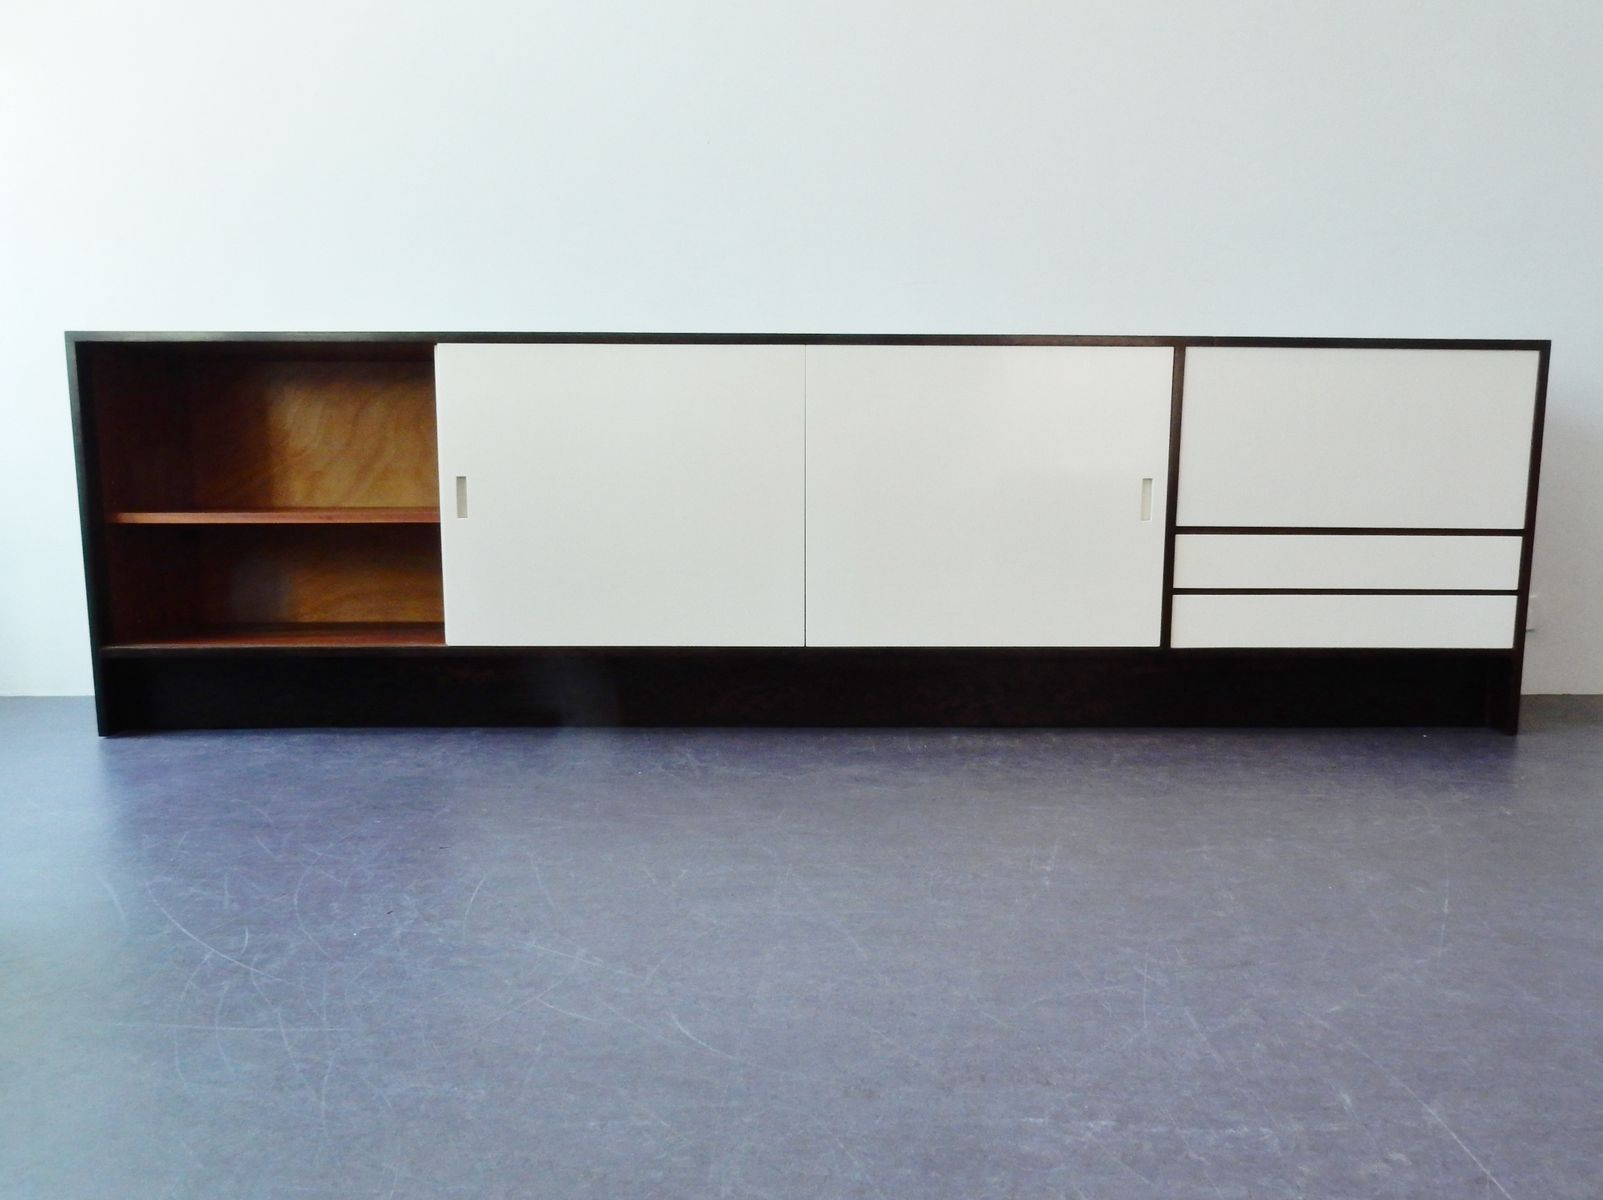 gro es niederl ndisches weng furnier sideboard 1960er bei pamono kaufen. Black Bedroom Furniture Sets. Home Design Ideas